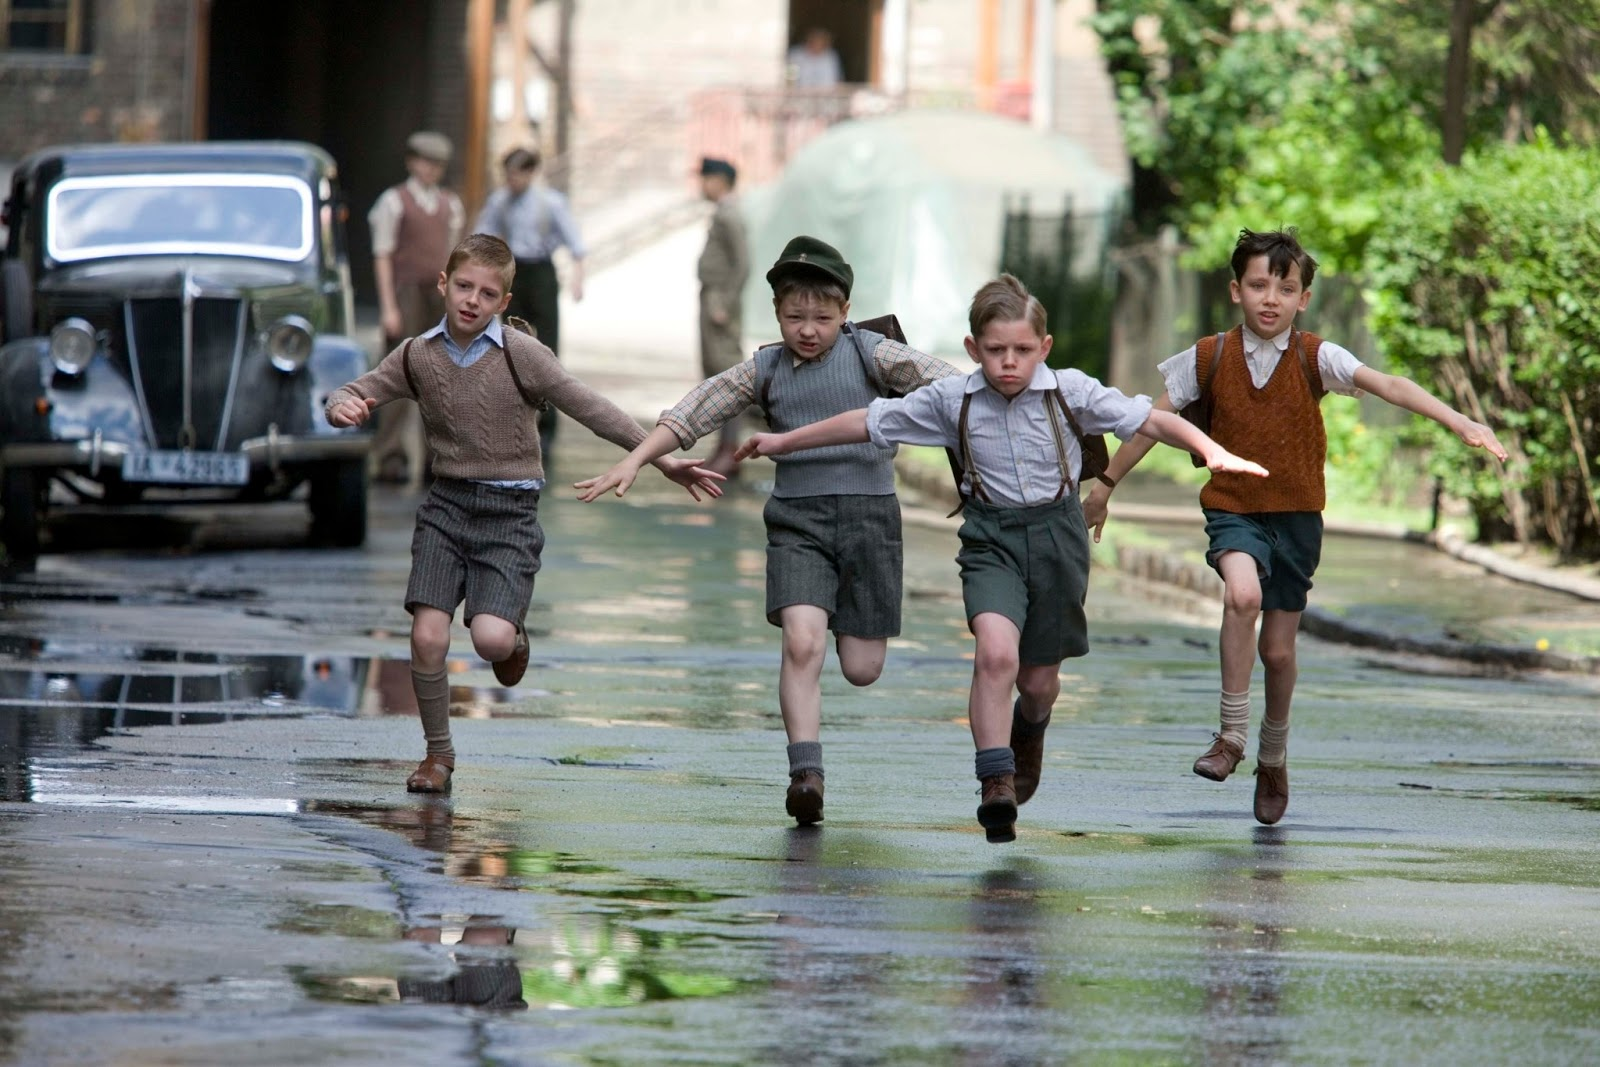 reading films the boy in the striped pyjamas cruelty and irony the boy in the striped pyjamas cruelty and irony of war